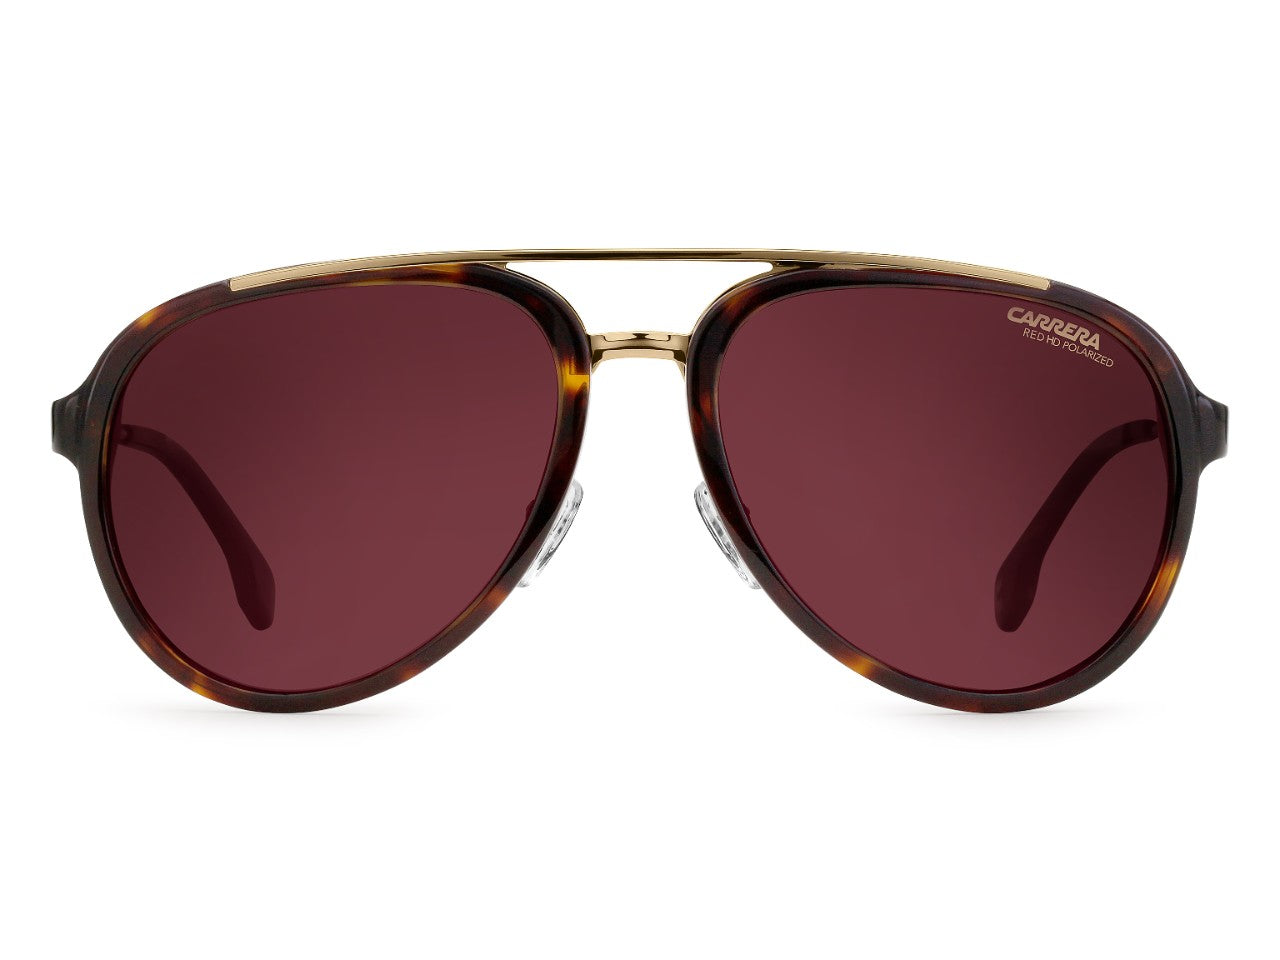 Carrera - 132 Havana Gold Sunglasses / Burgundy Polarized Lenses